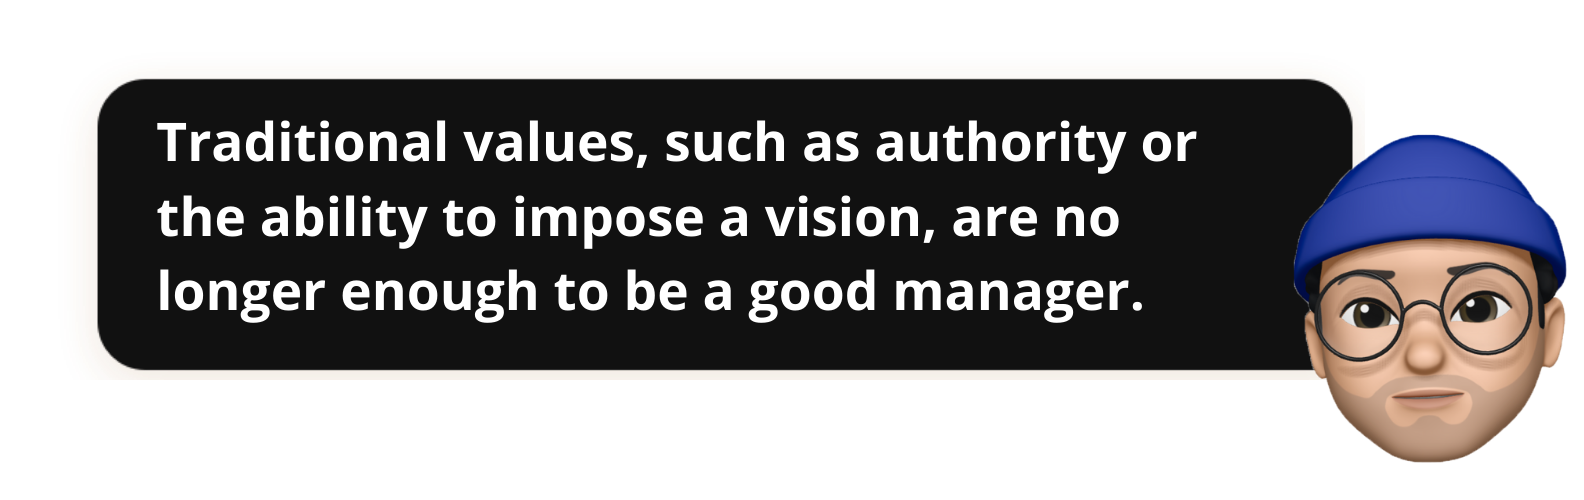 Traditional values, such as authority or the ability to impose a vision, are no longer enough to be a good manager.- Popwork